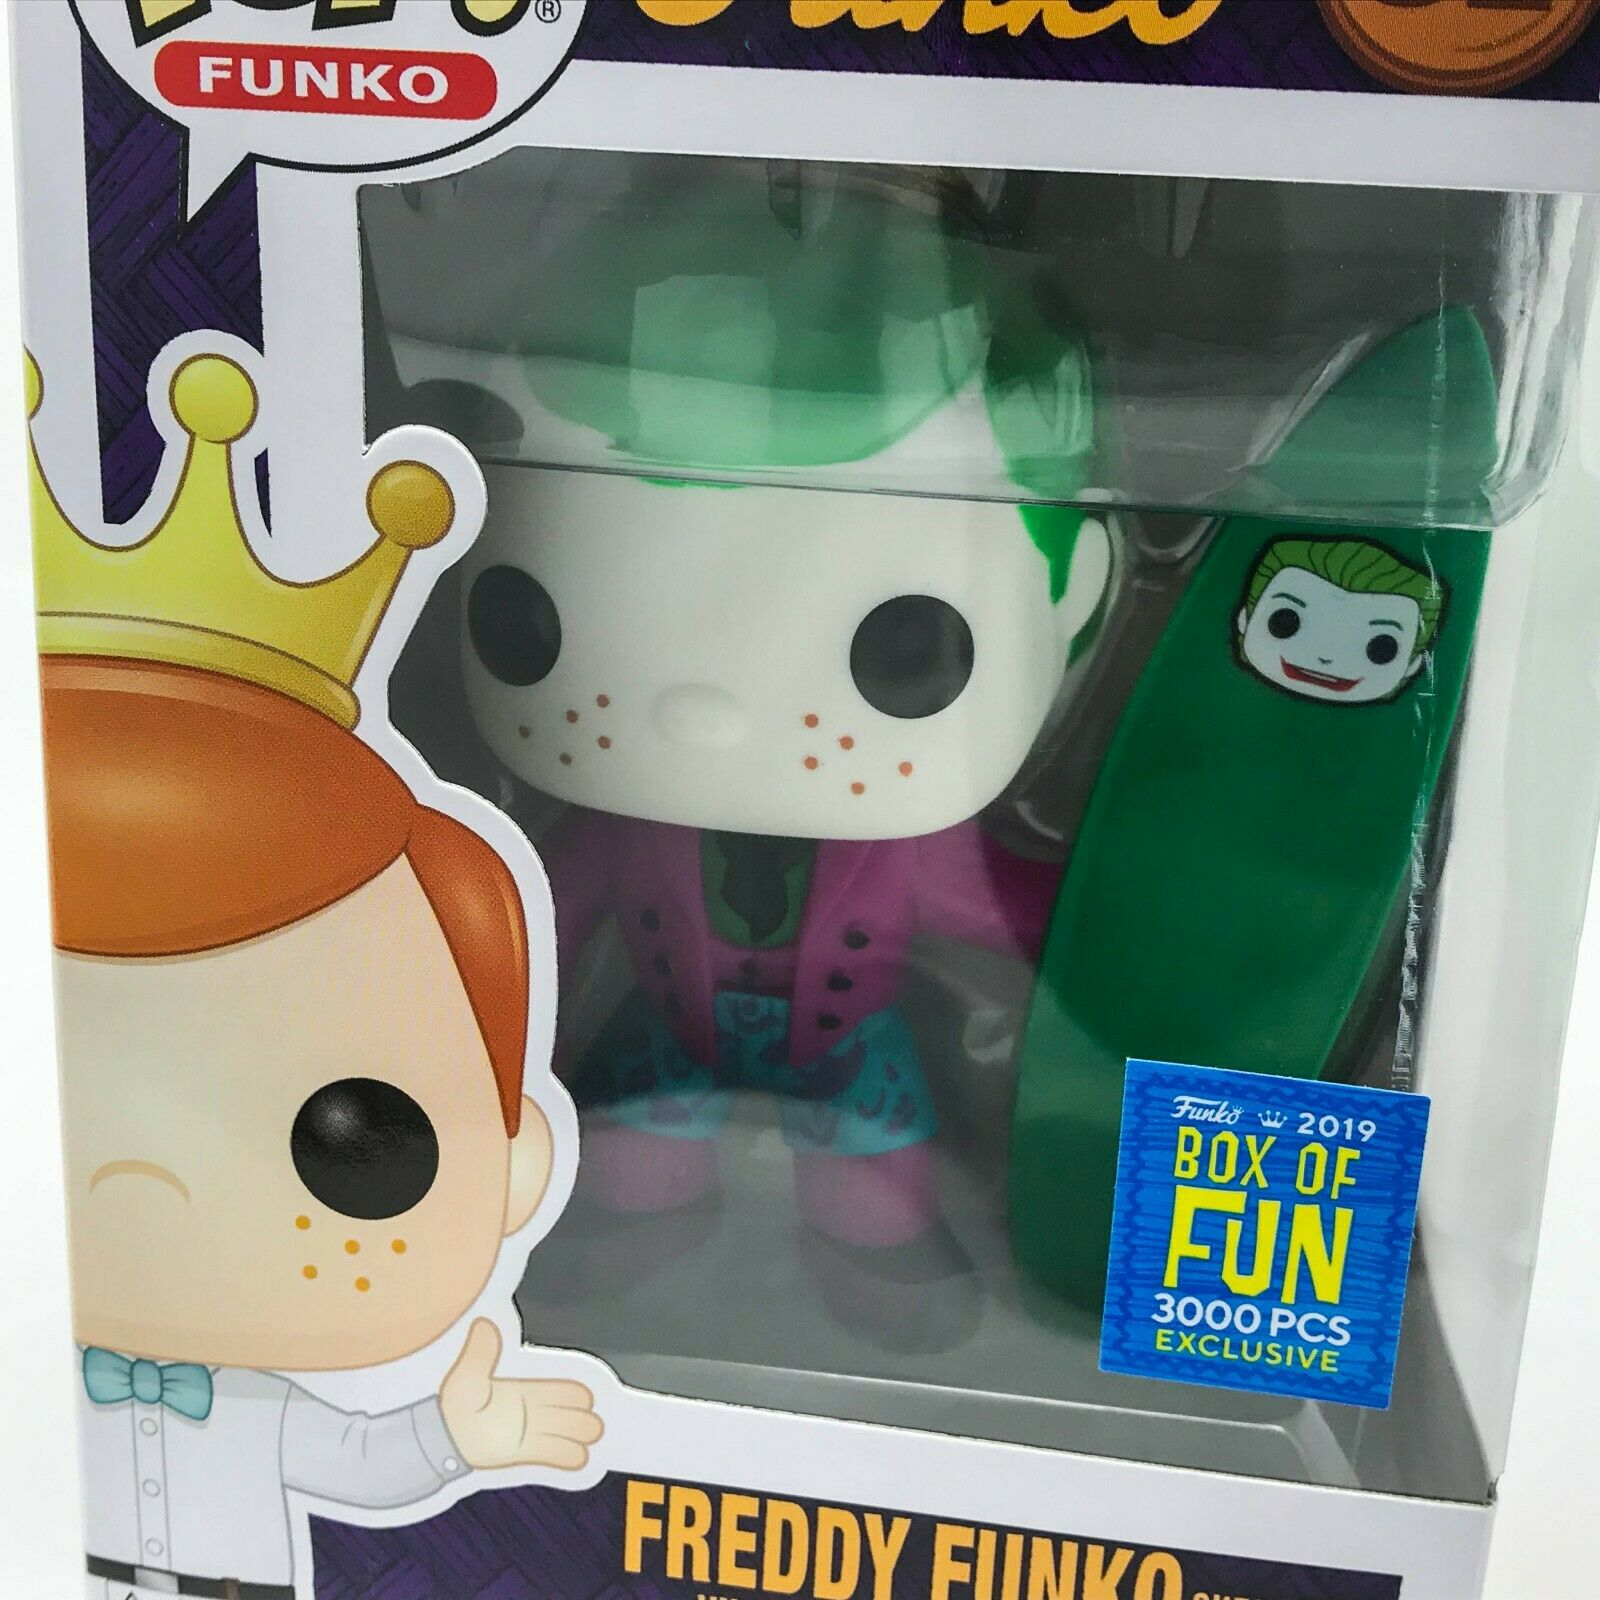 Frotdy Funko - The Joker Surf's Up (Box of Fun   Fundays 2019) Funko Pop  Vinyl